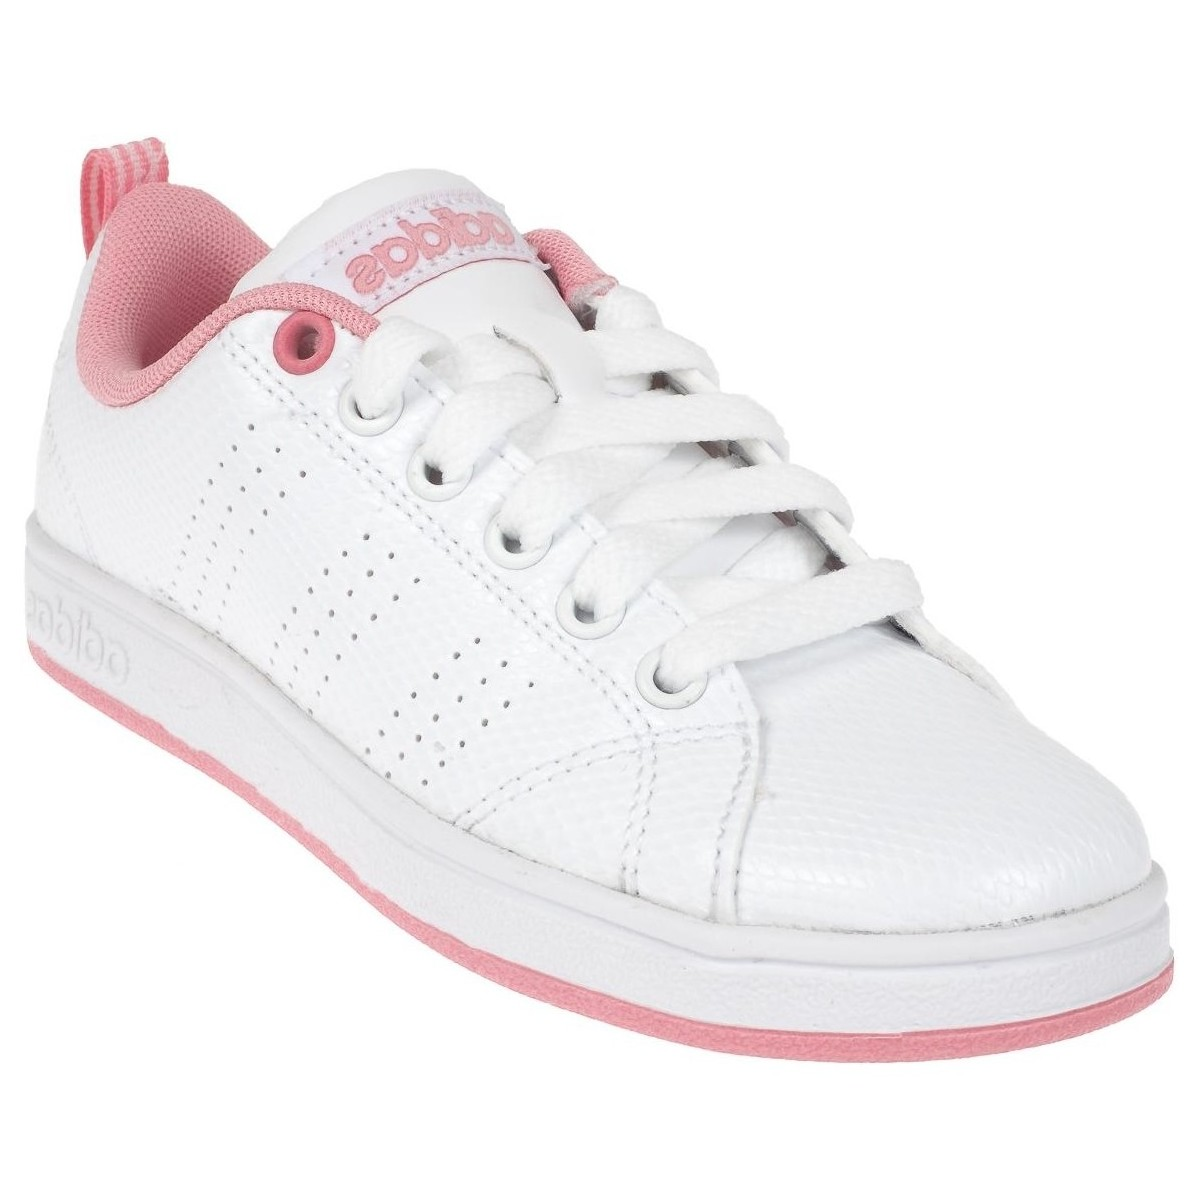 adidas Originals Advantage vs m blc Blanc - Chaussures Baskets basses Femme